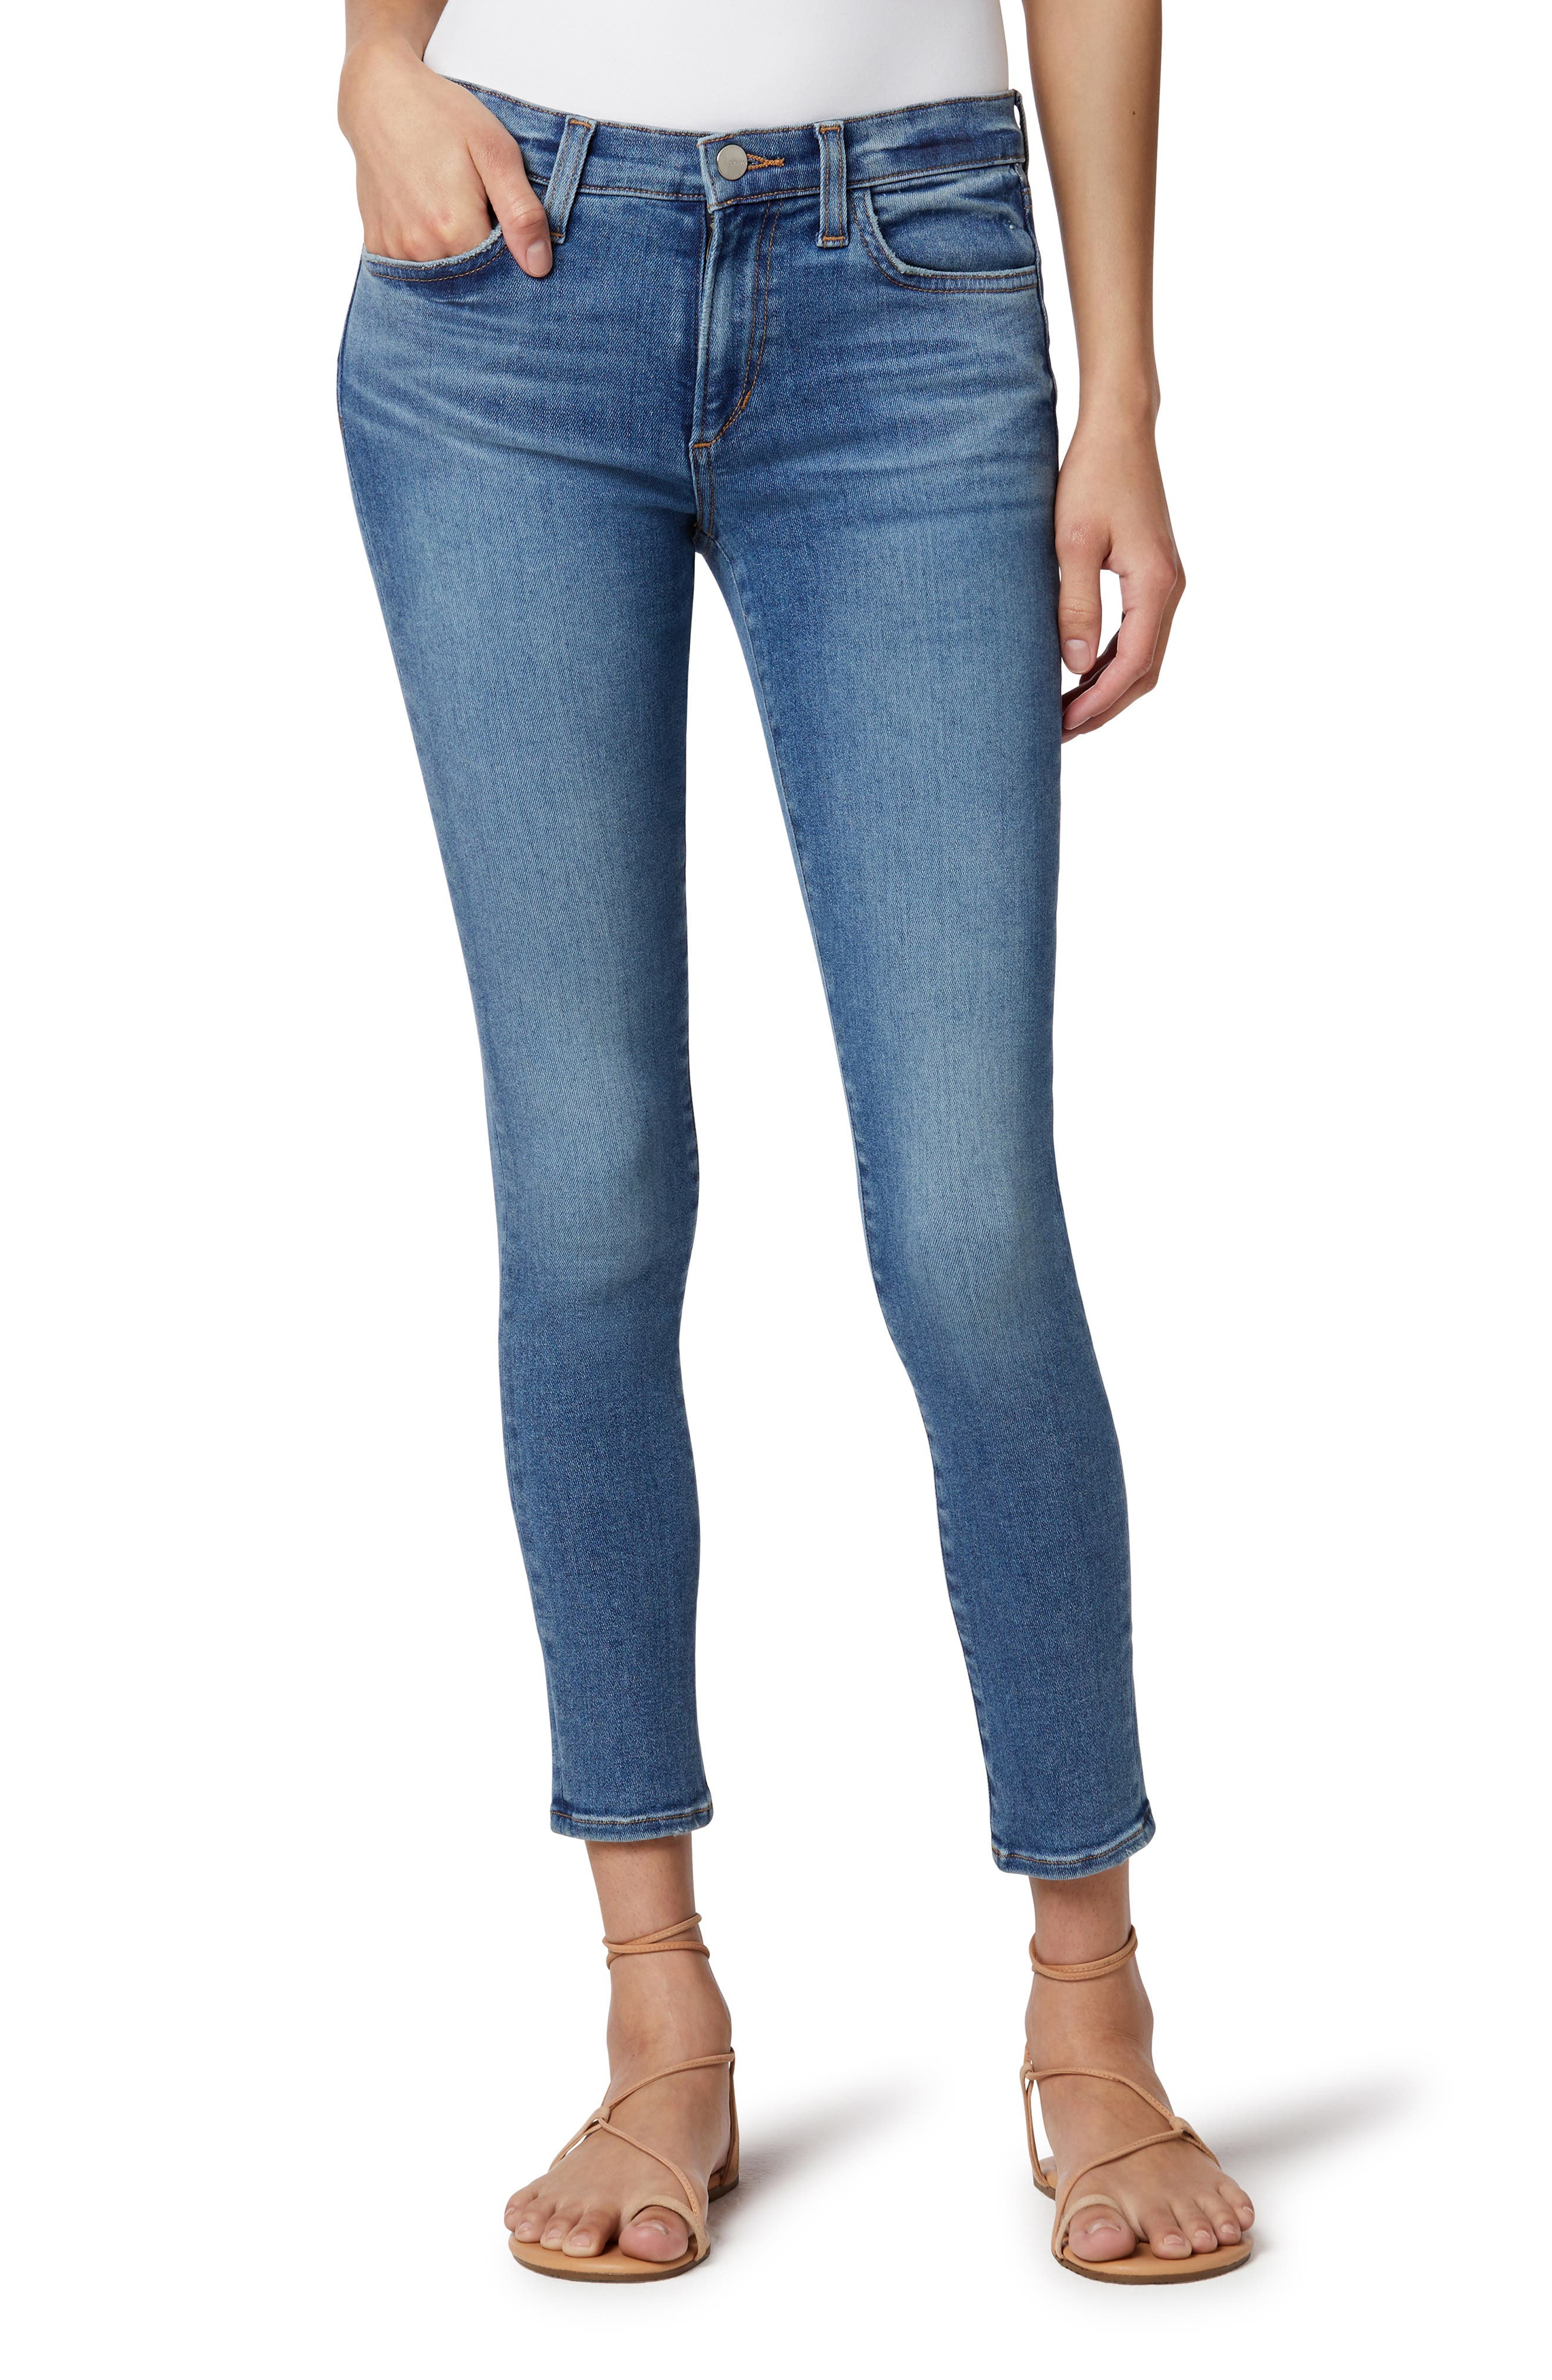 The Icon Ankle Organic Cotton Blend Skinny Jeans